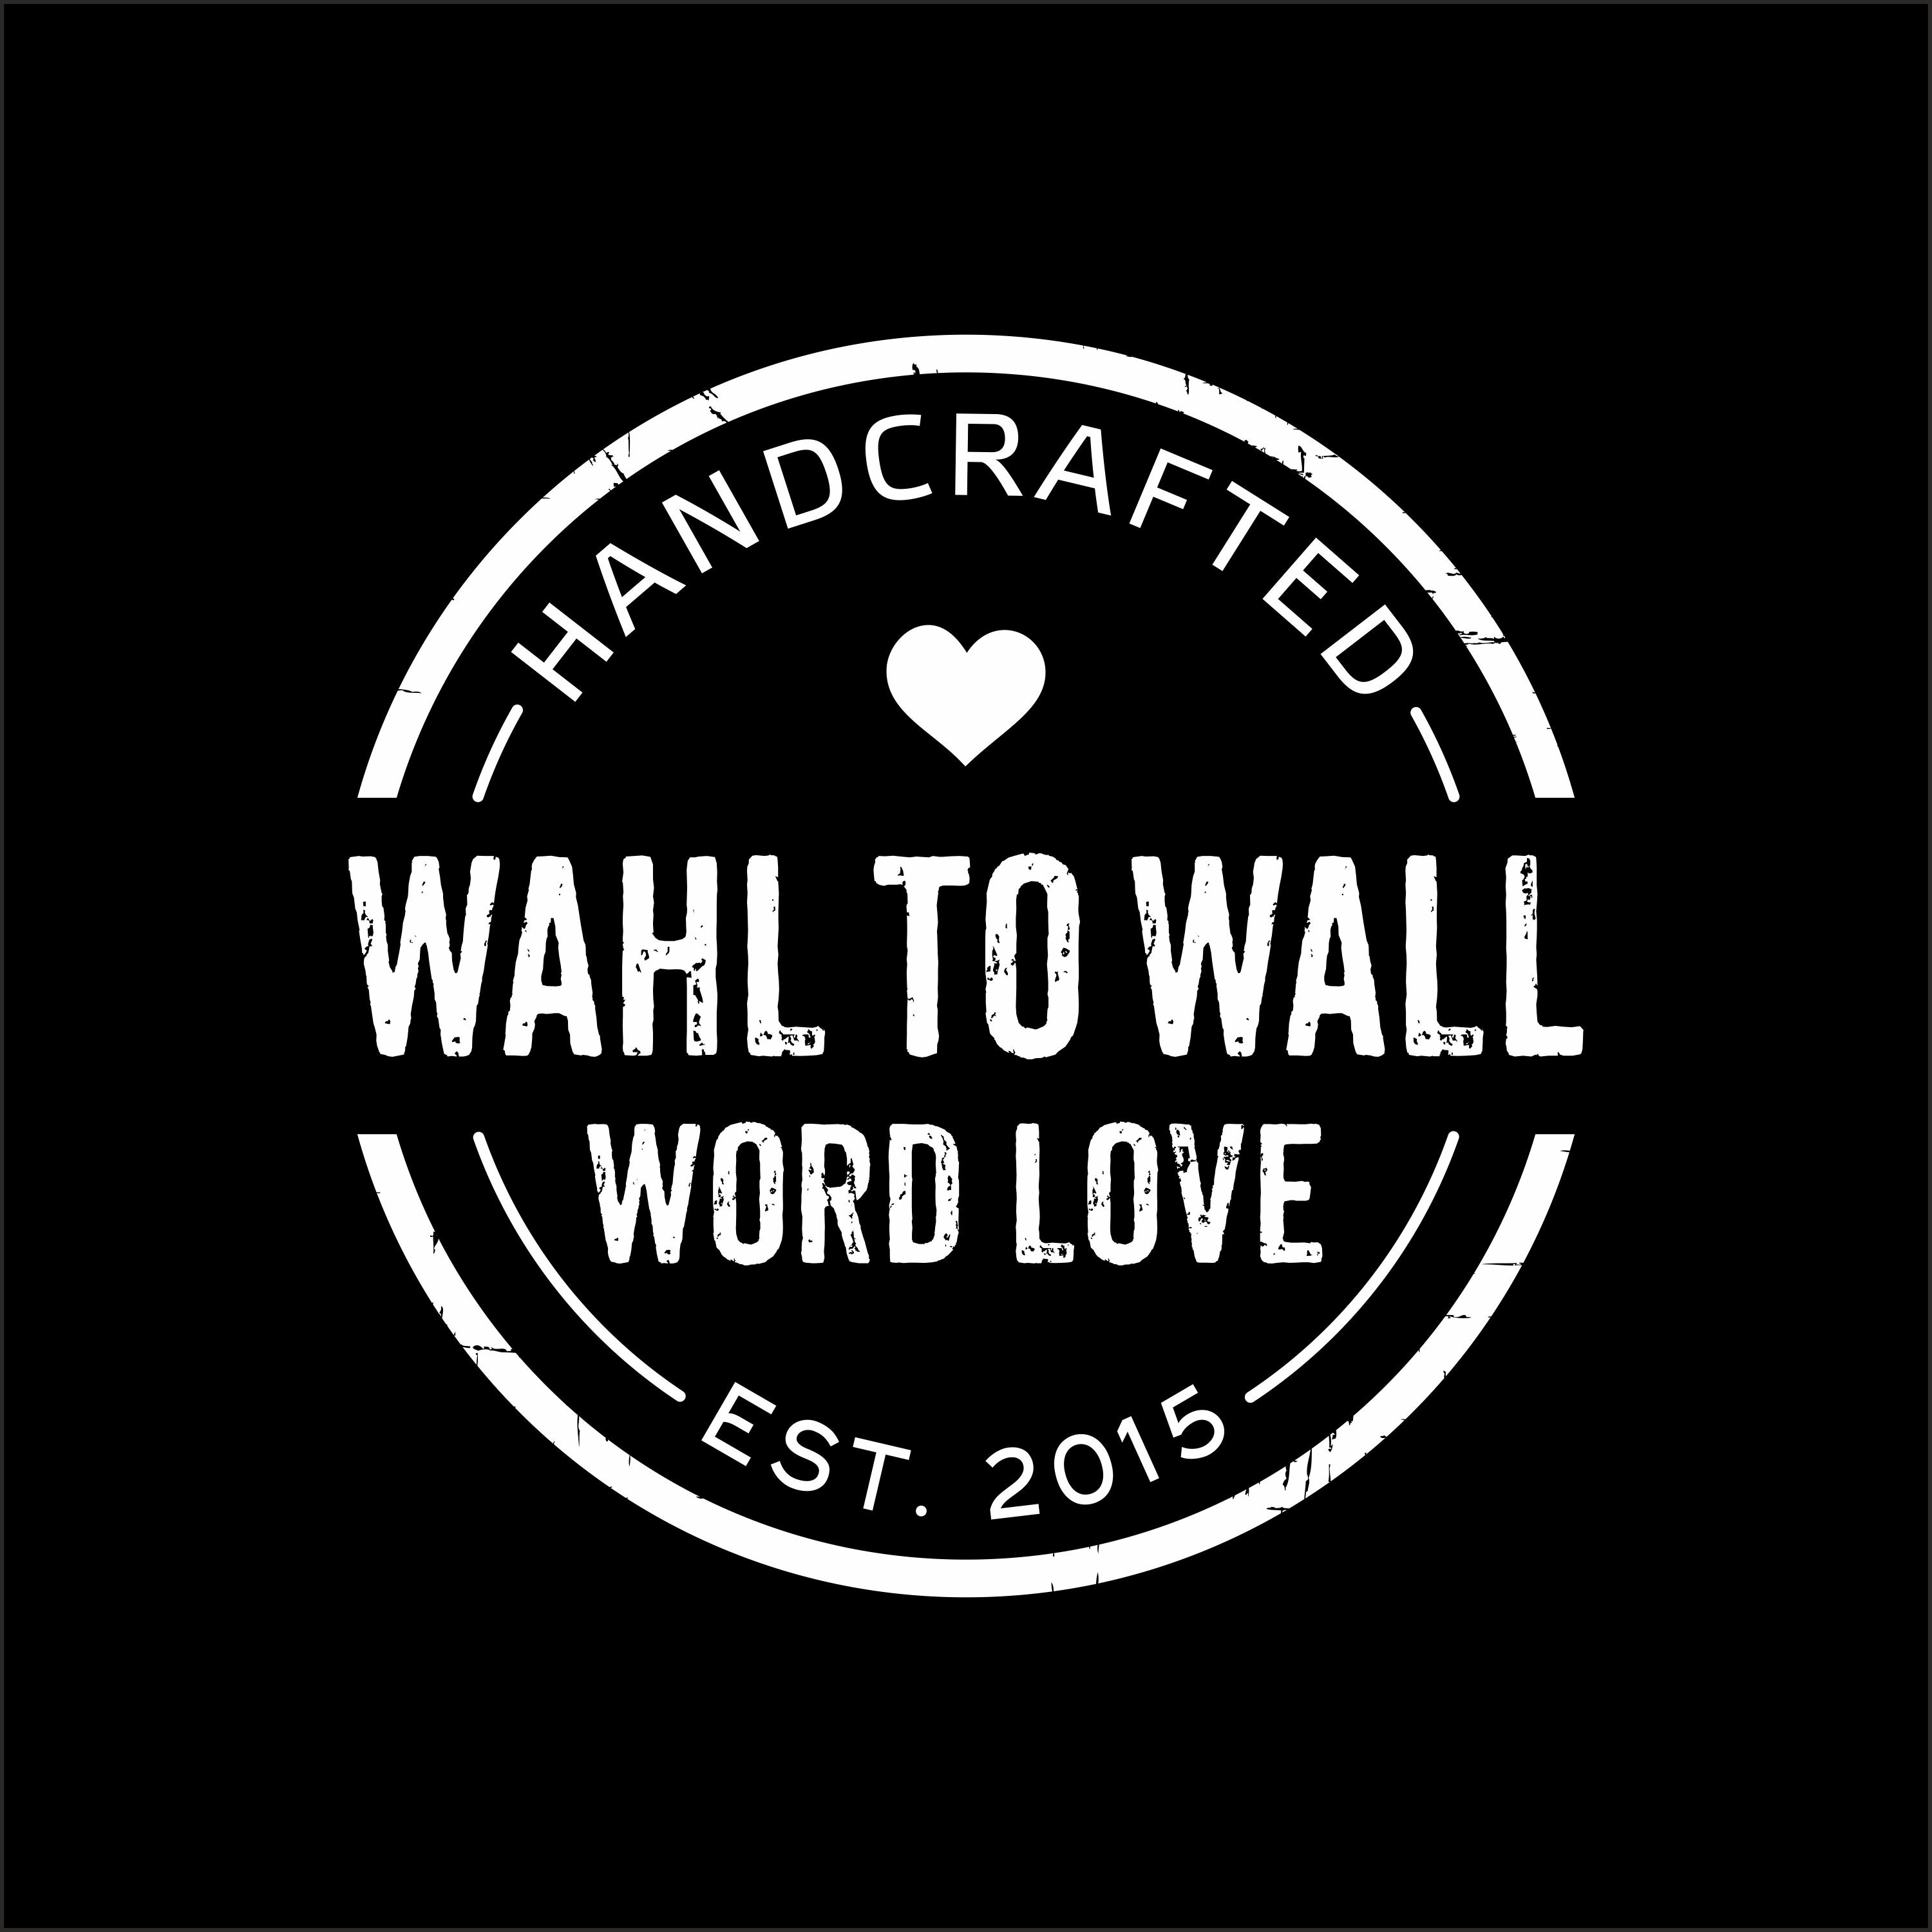 Words are potent. May ours speak life light von WahlToWallWordLove